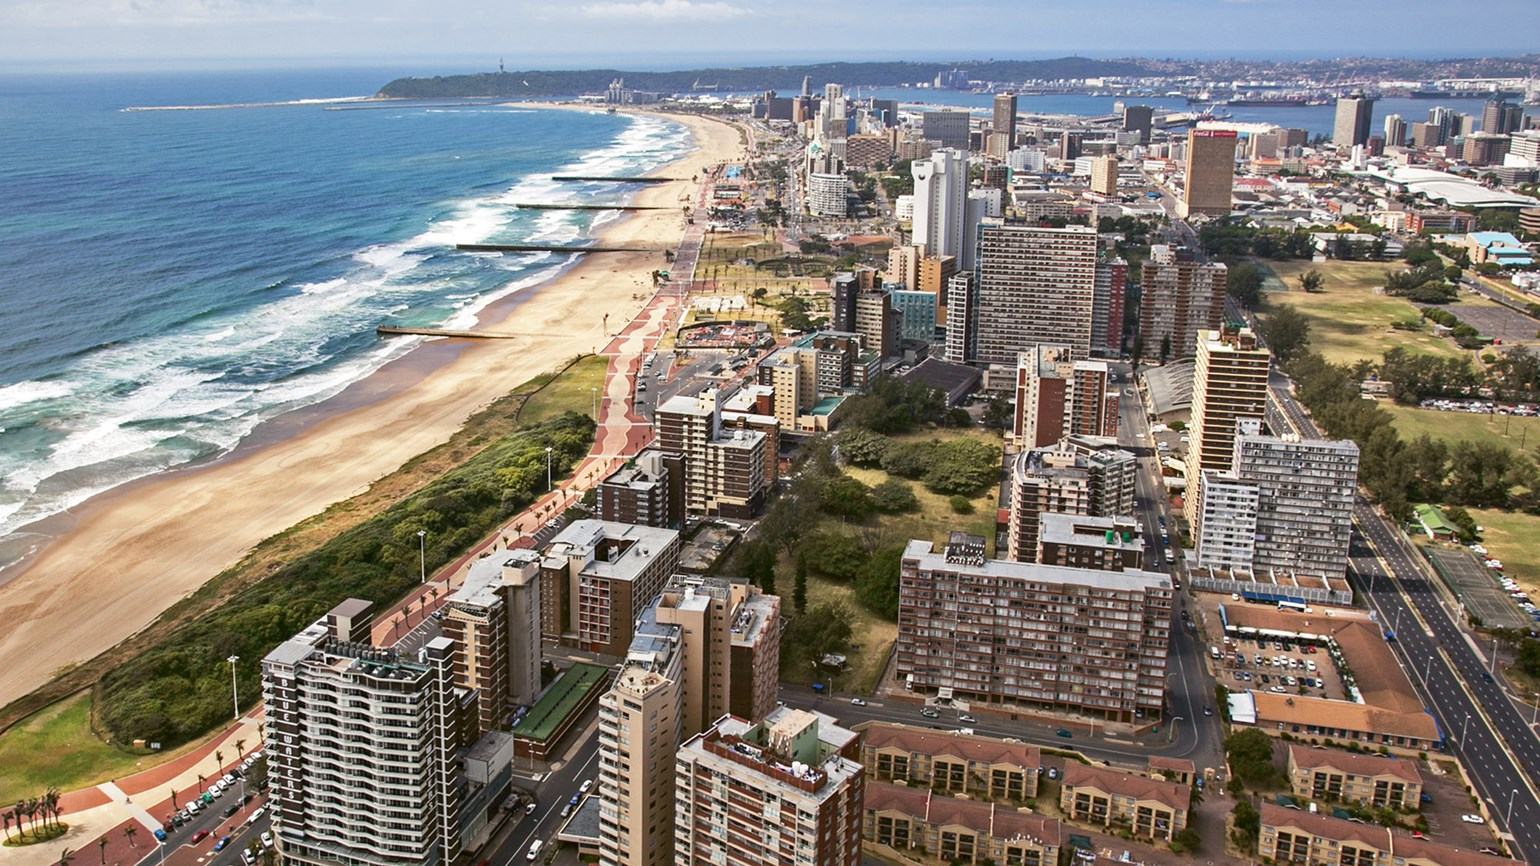 A vibrant mix of flavors, cultures in Durban